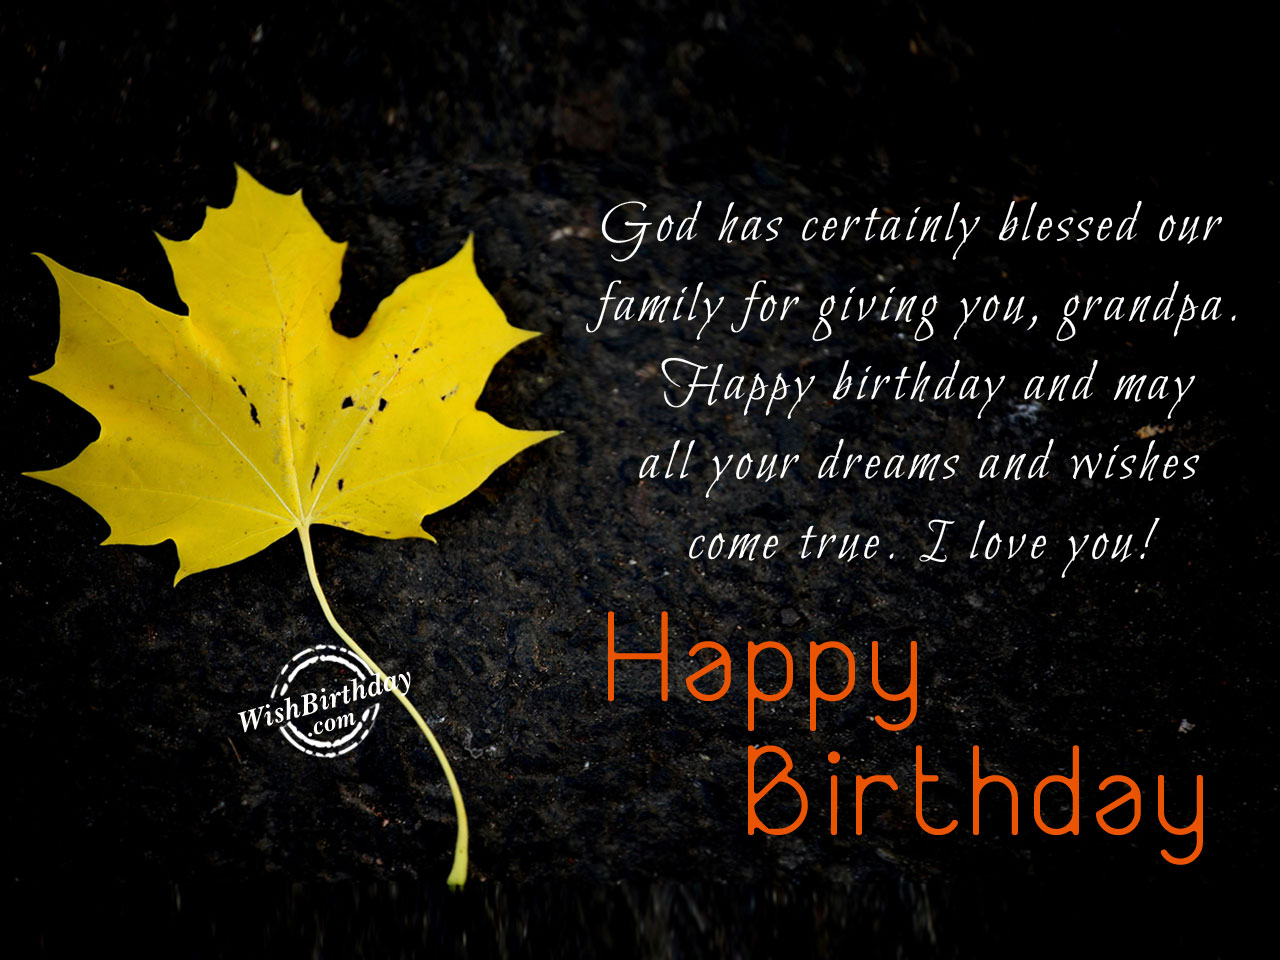 Birthday Wishes For Grandfather - Birthday Images, Pictures